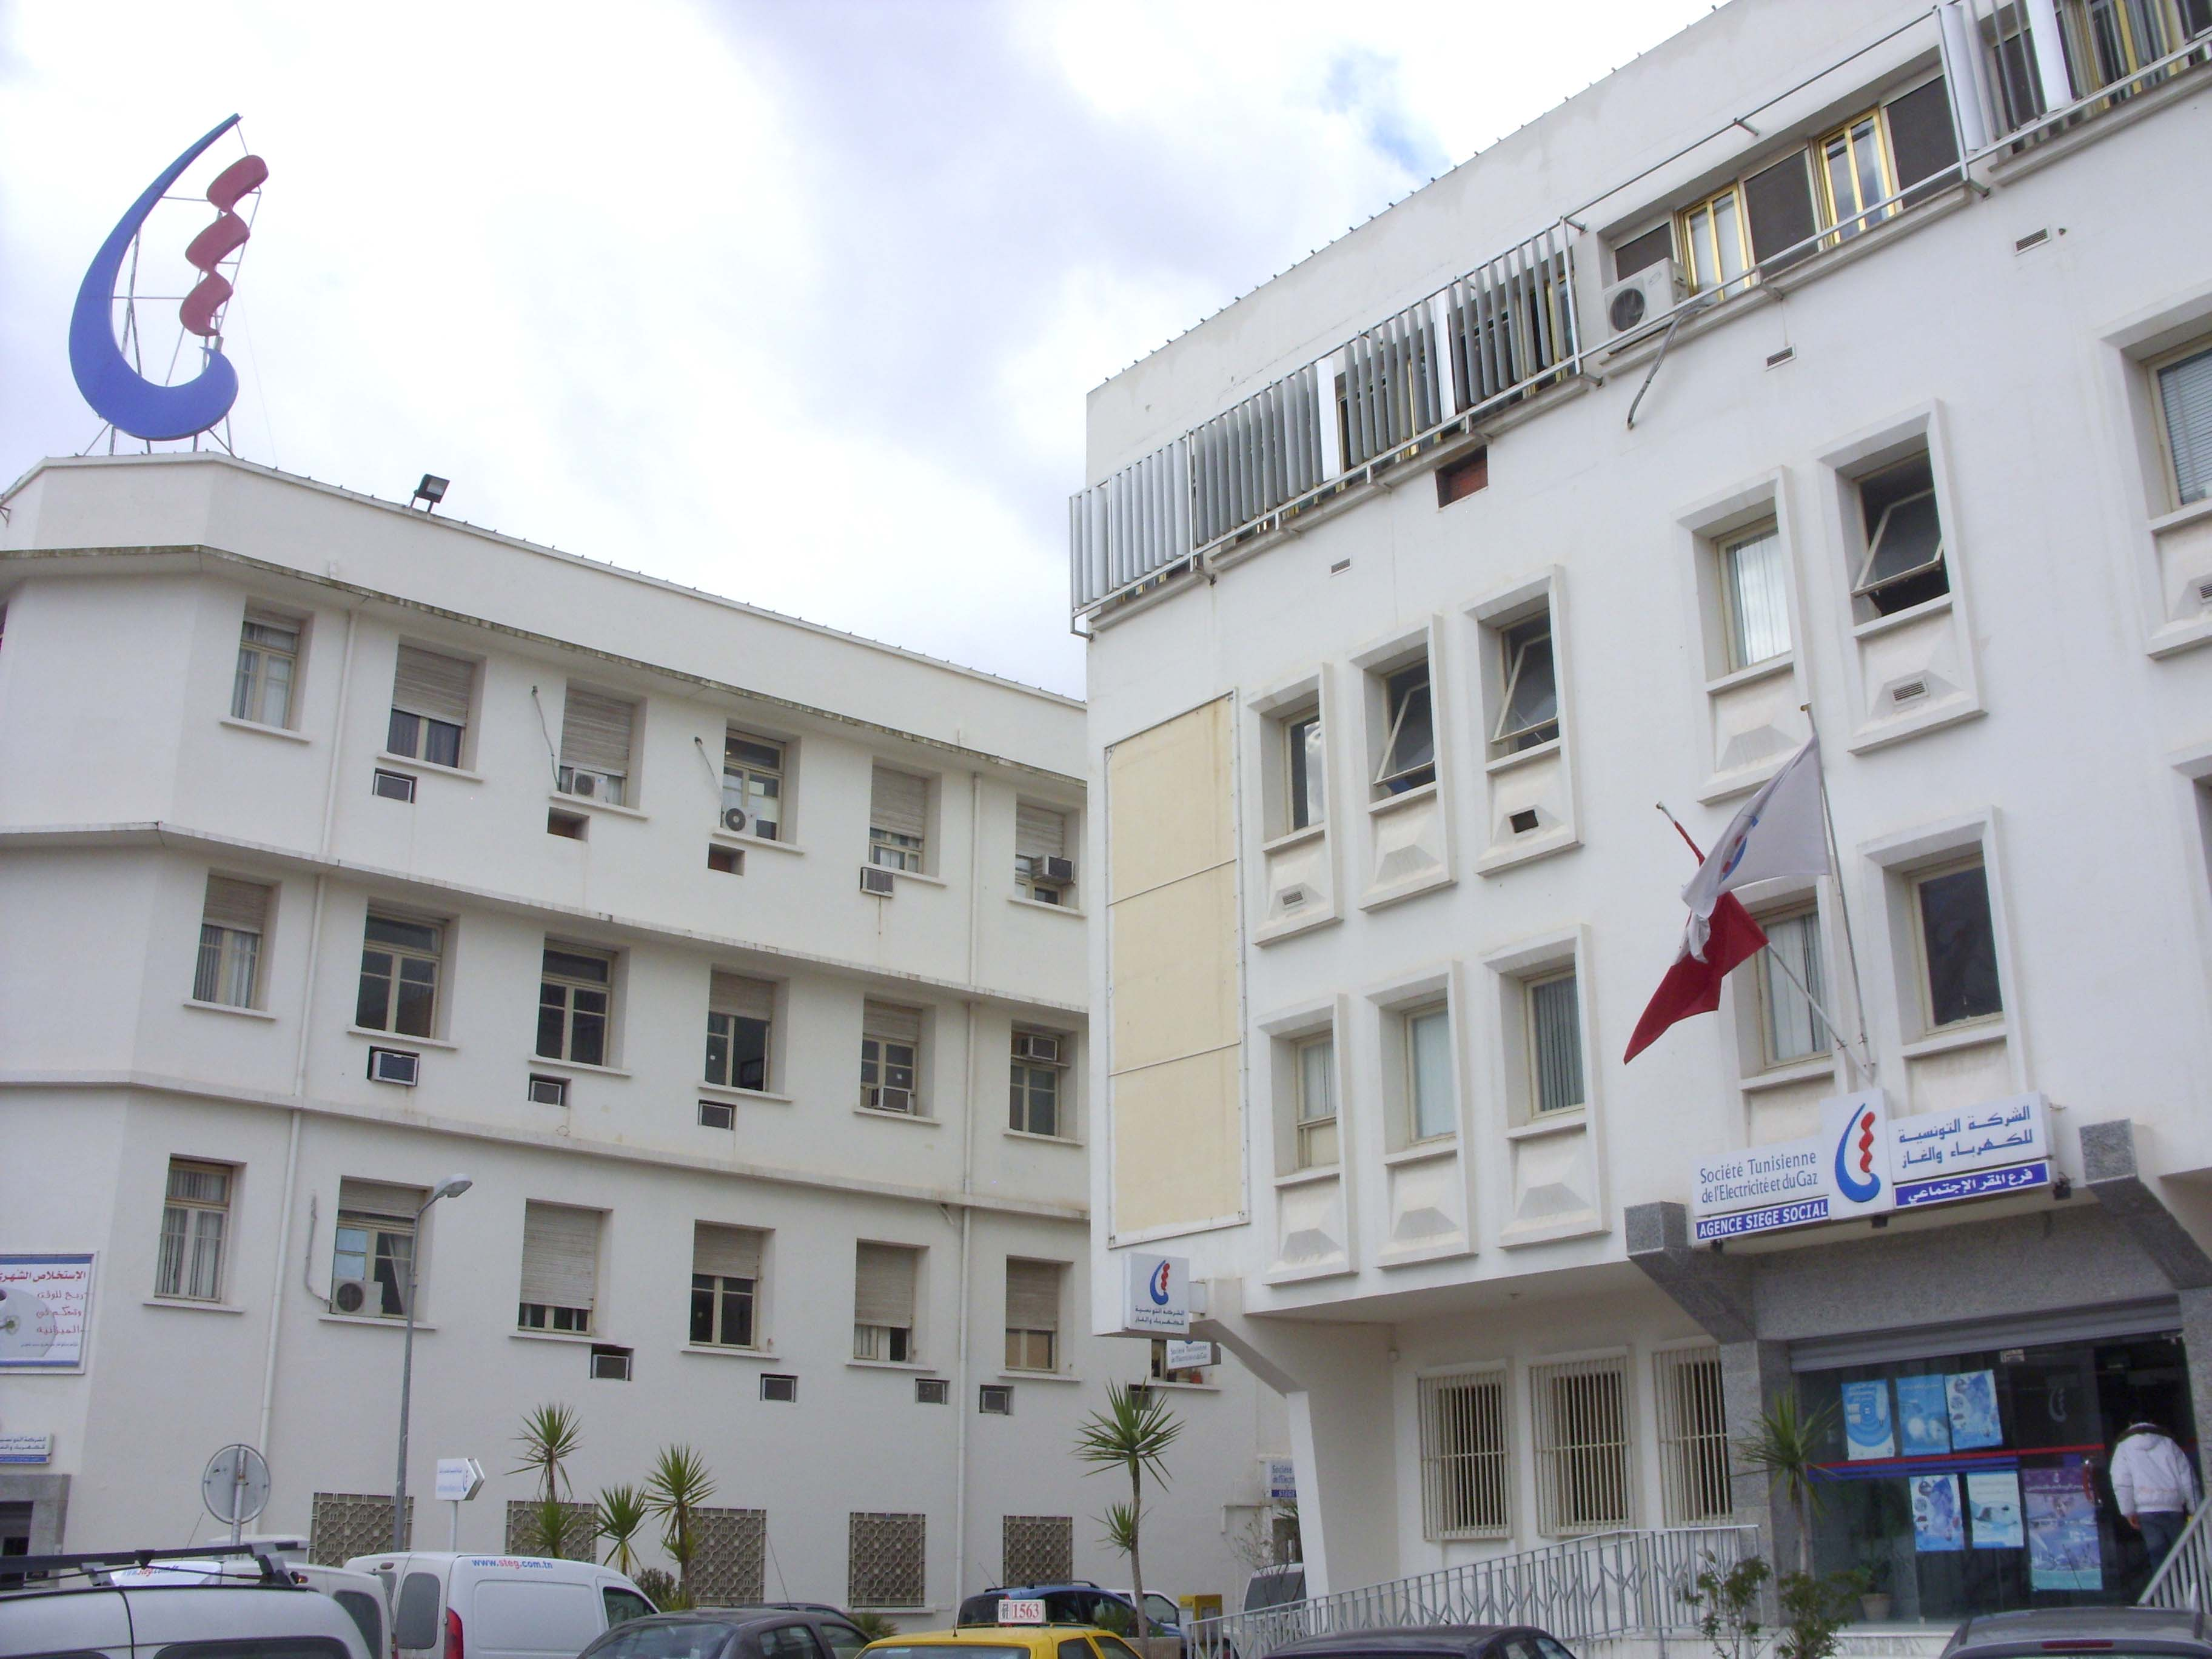 A view of the headquaters of the Tunisian Company of Electricity and Gas in Tunis. (Wikipedia)